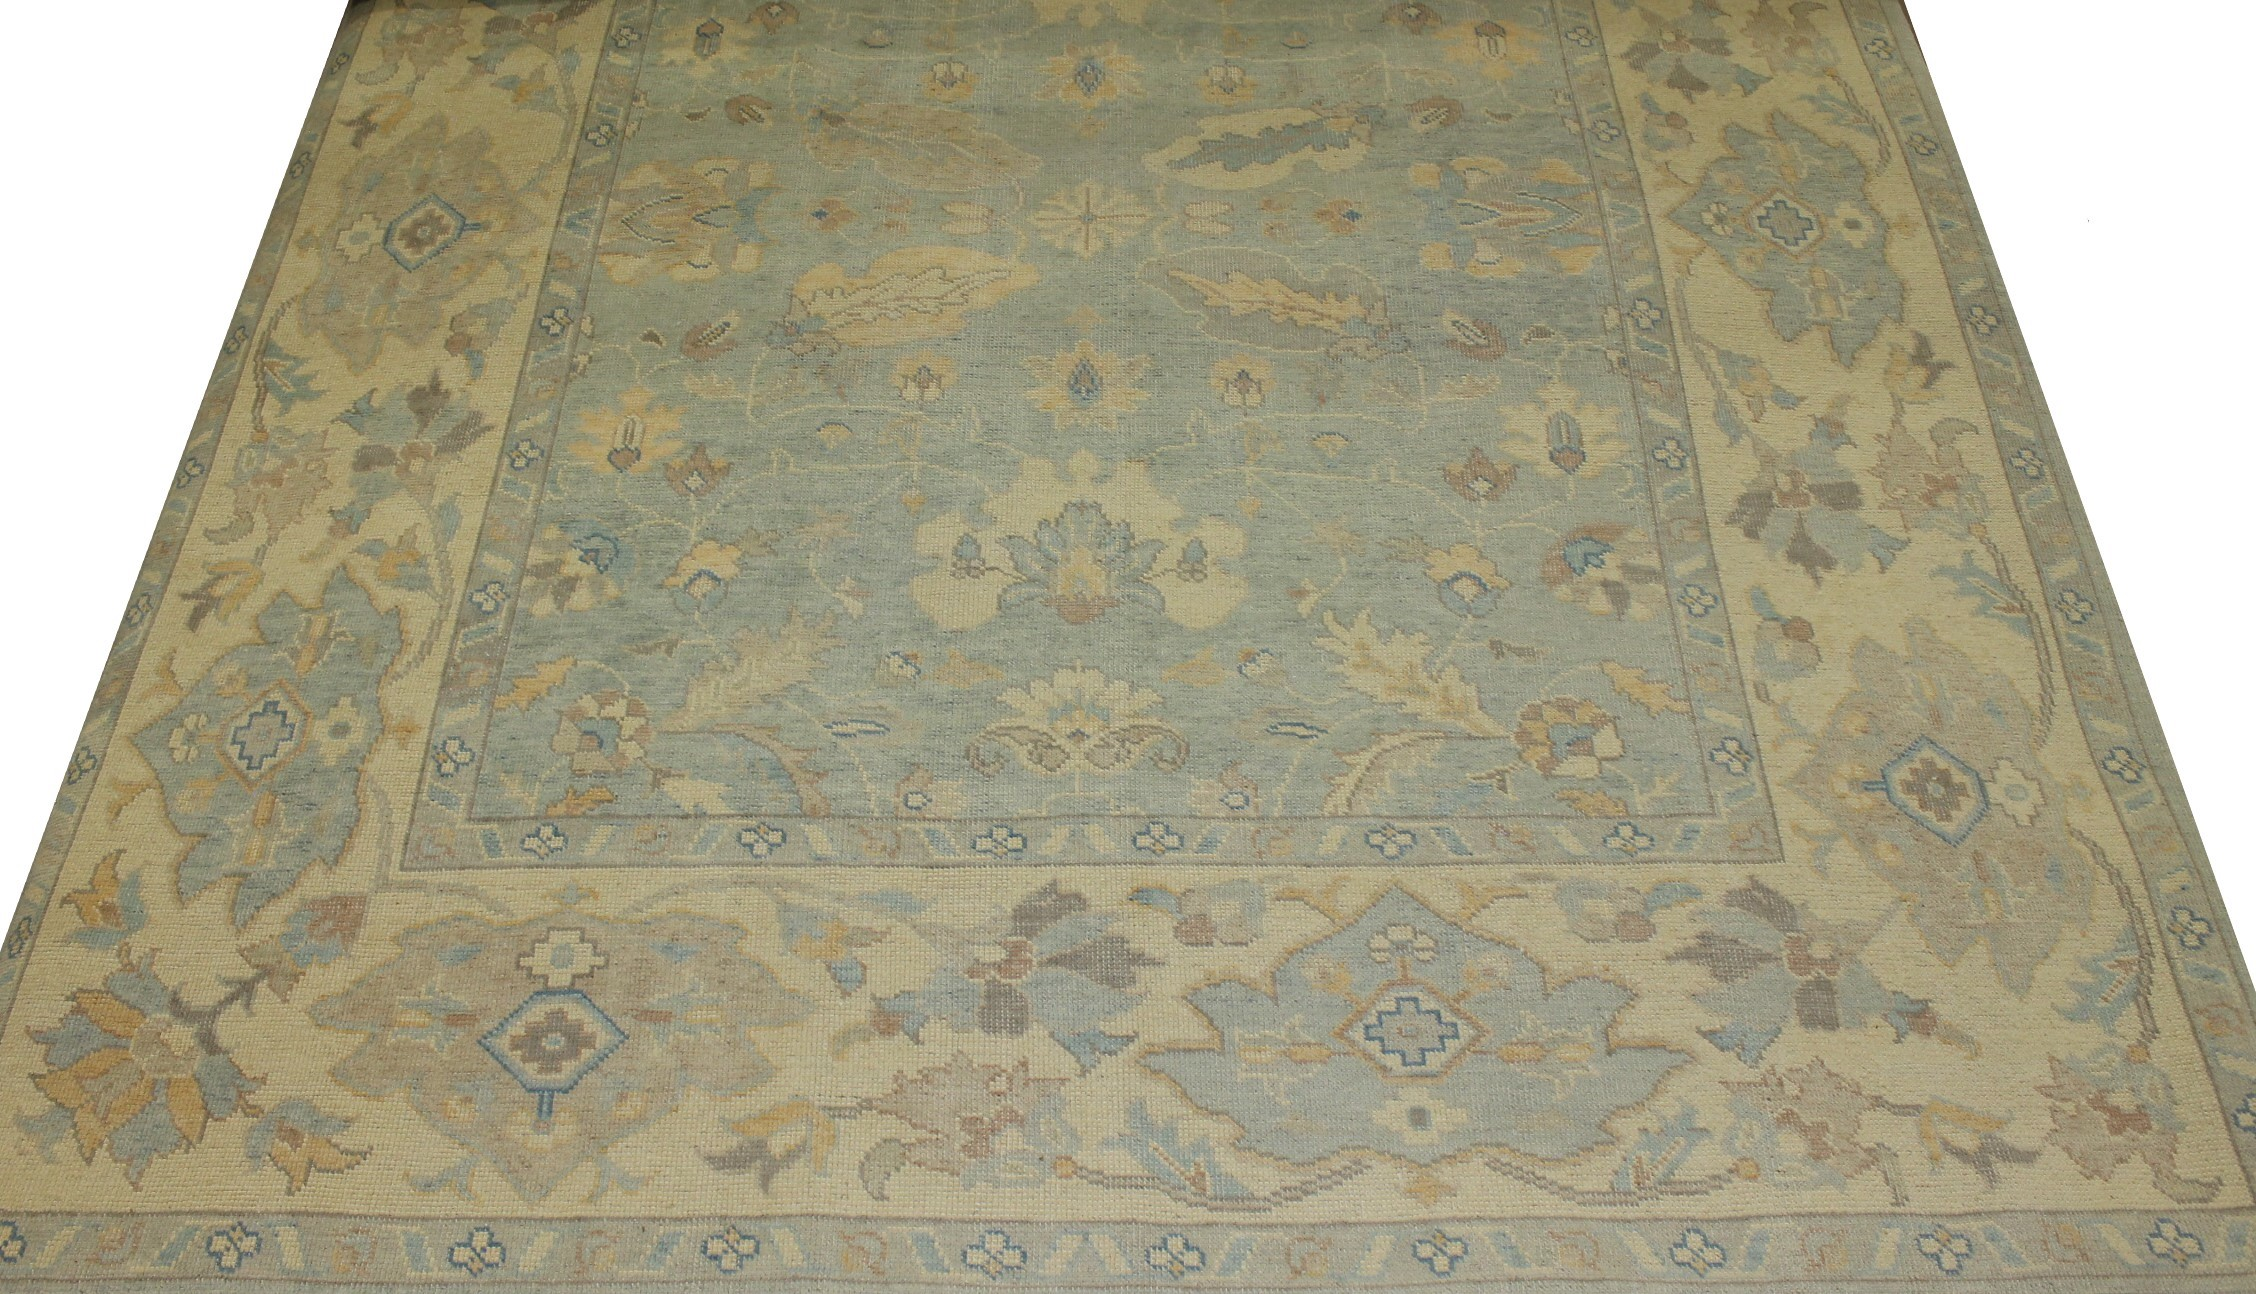 8x10 Oushak Hand Knotted Wool Area Rug - MR16827